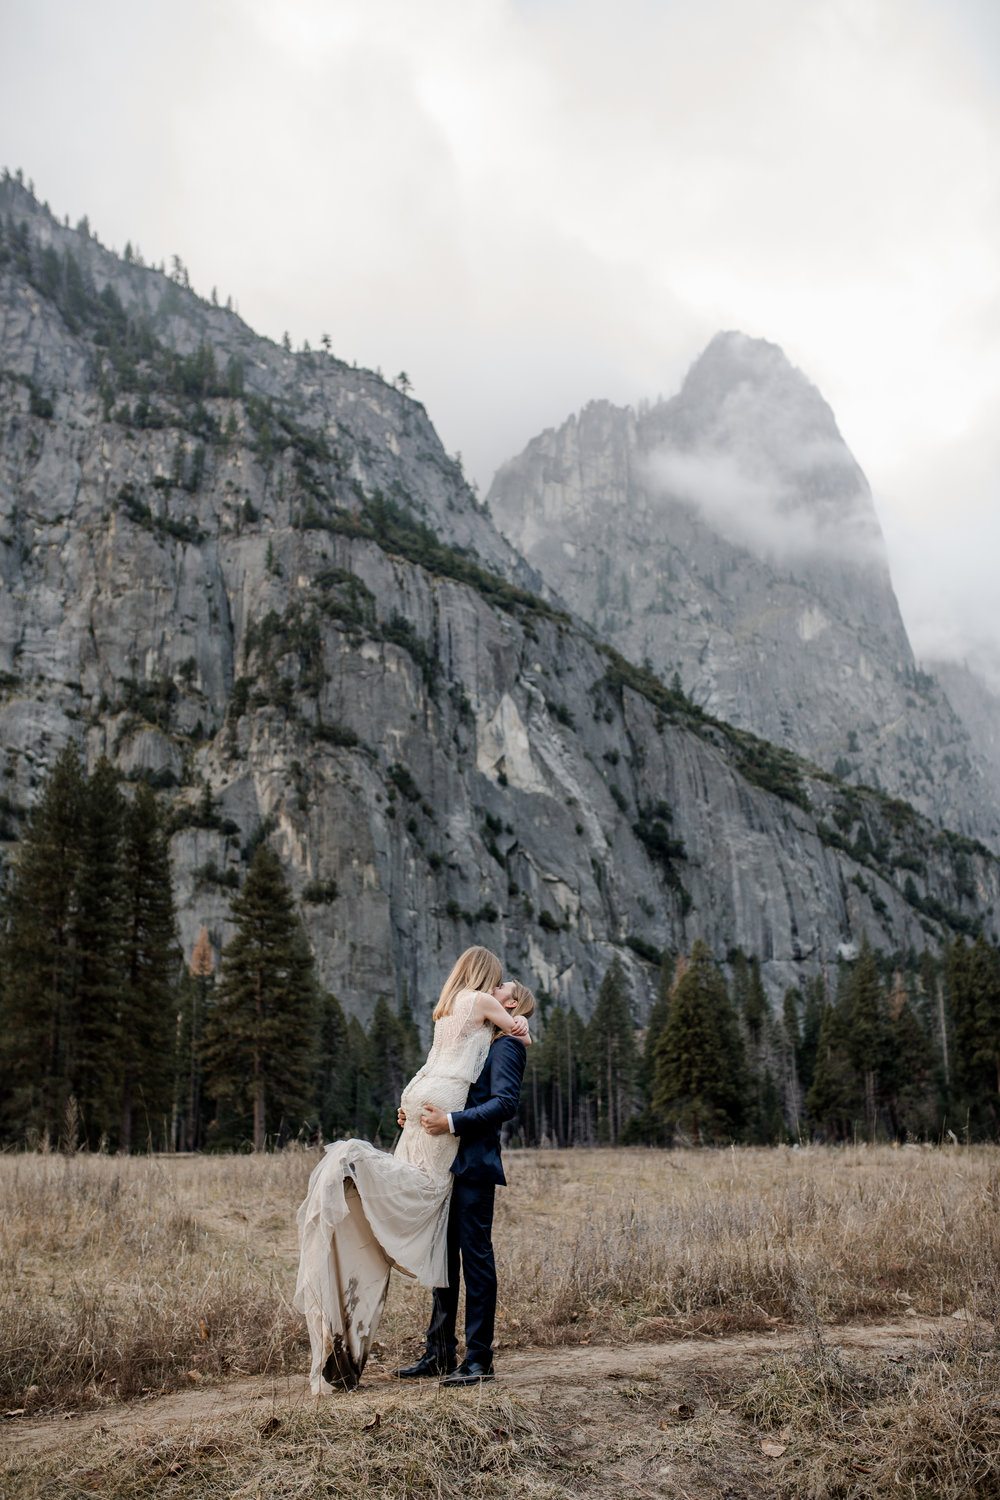 nicole-daacke-photography-yousemite-national-park-elopement-photographer-winter-cloud-moody-elope-inspiration-yosemite-valley-tunnel-view-winter-cloud-fog-weather-wedding-photos-66.jpg